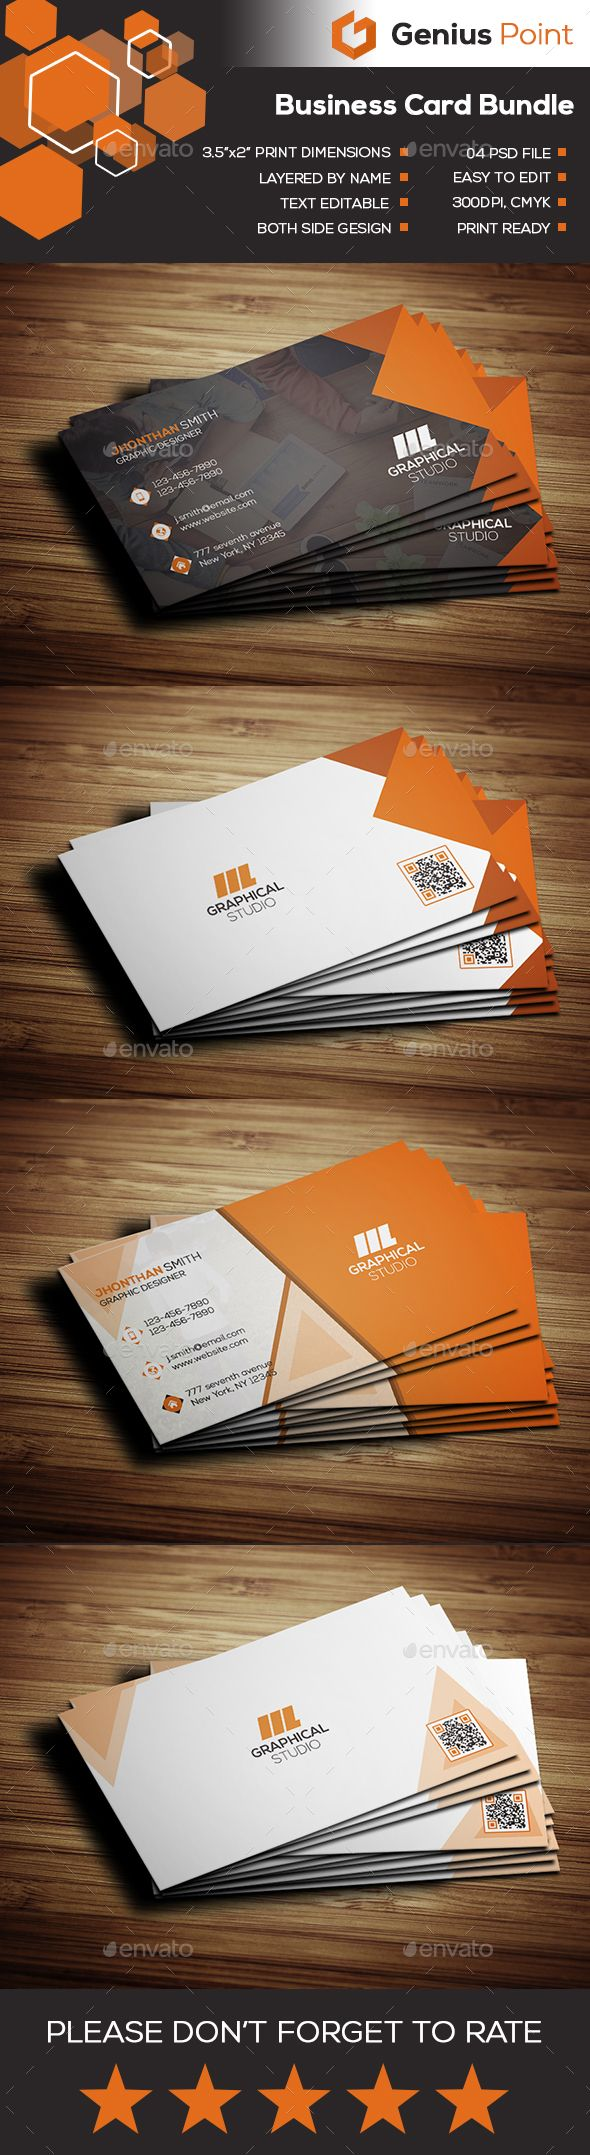 The Best Buy Business Cards Ideas On Pinterest Corporate - Buy business card template